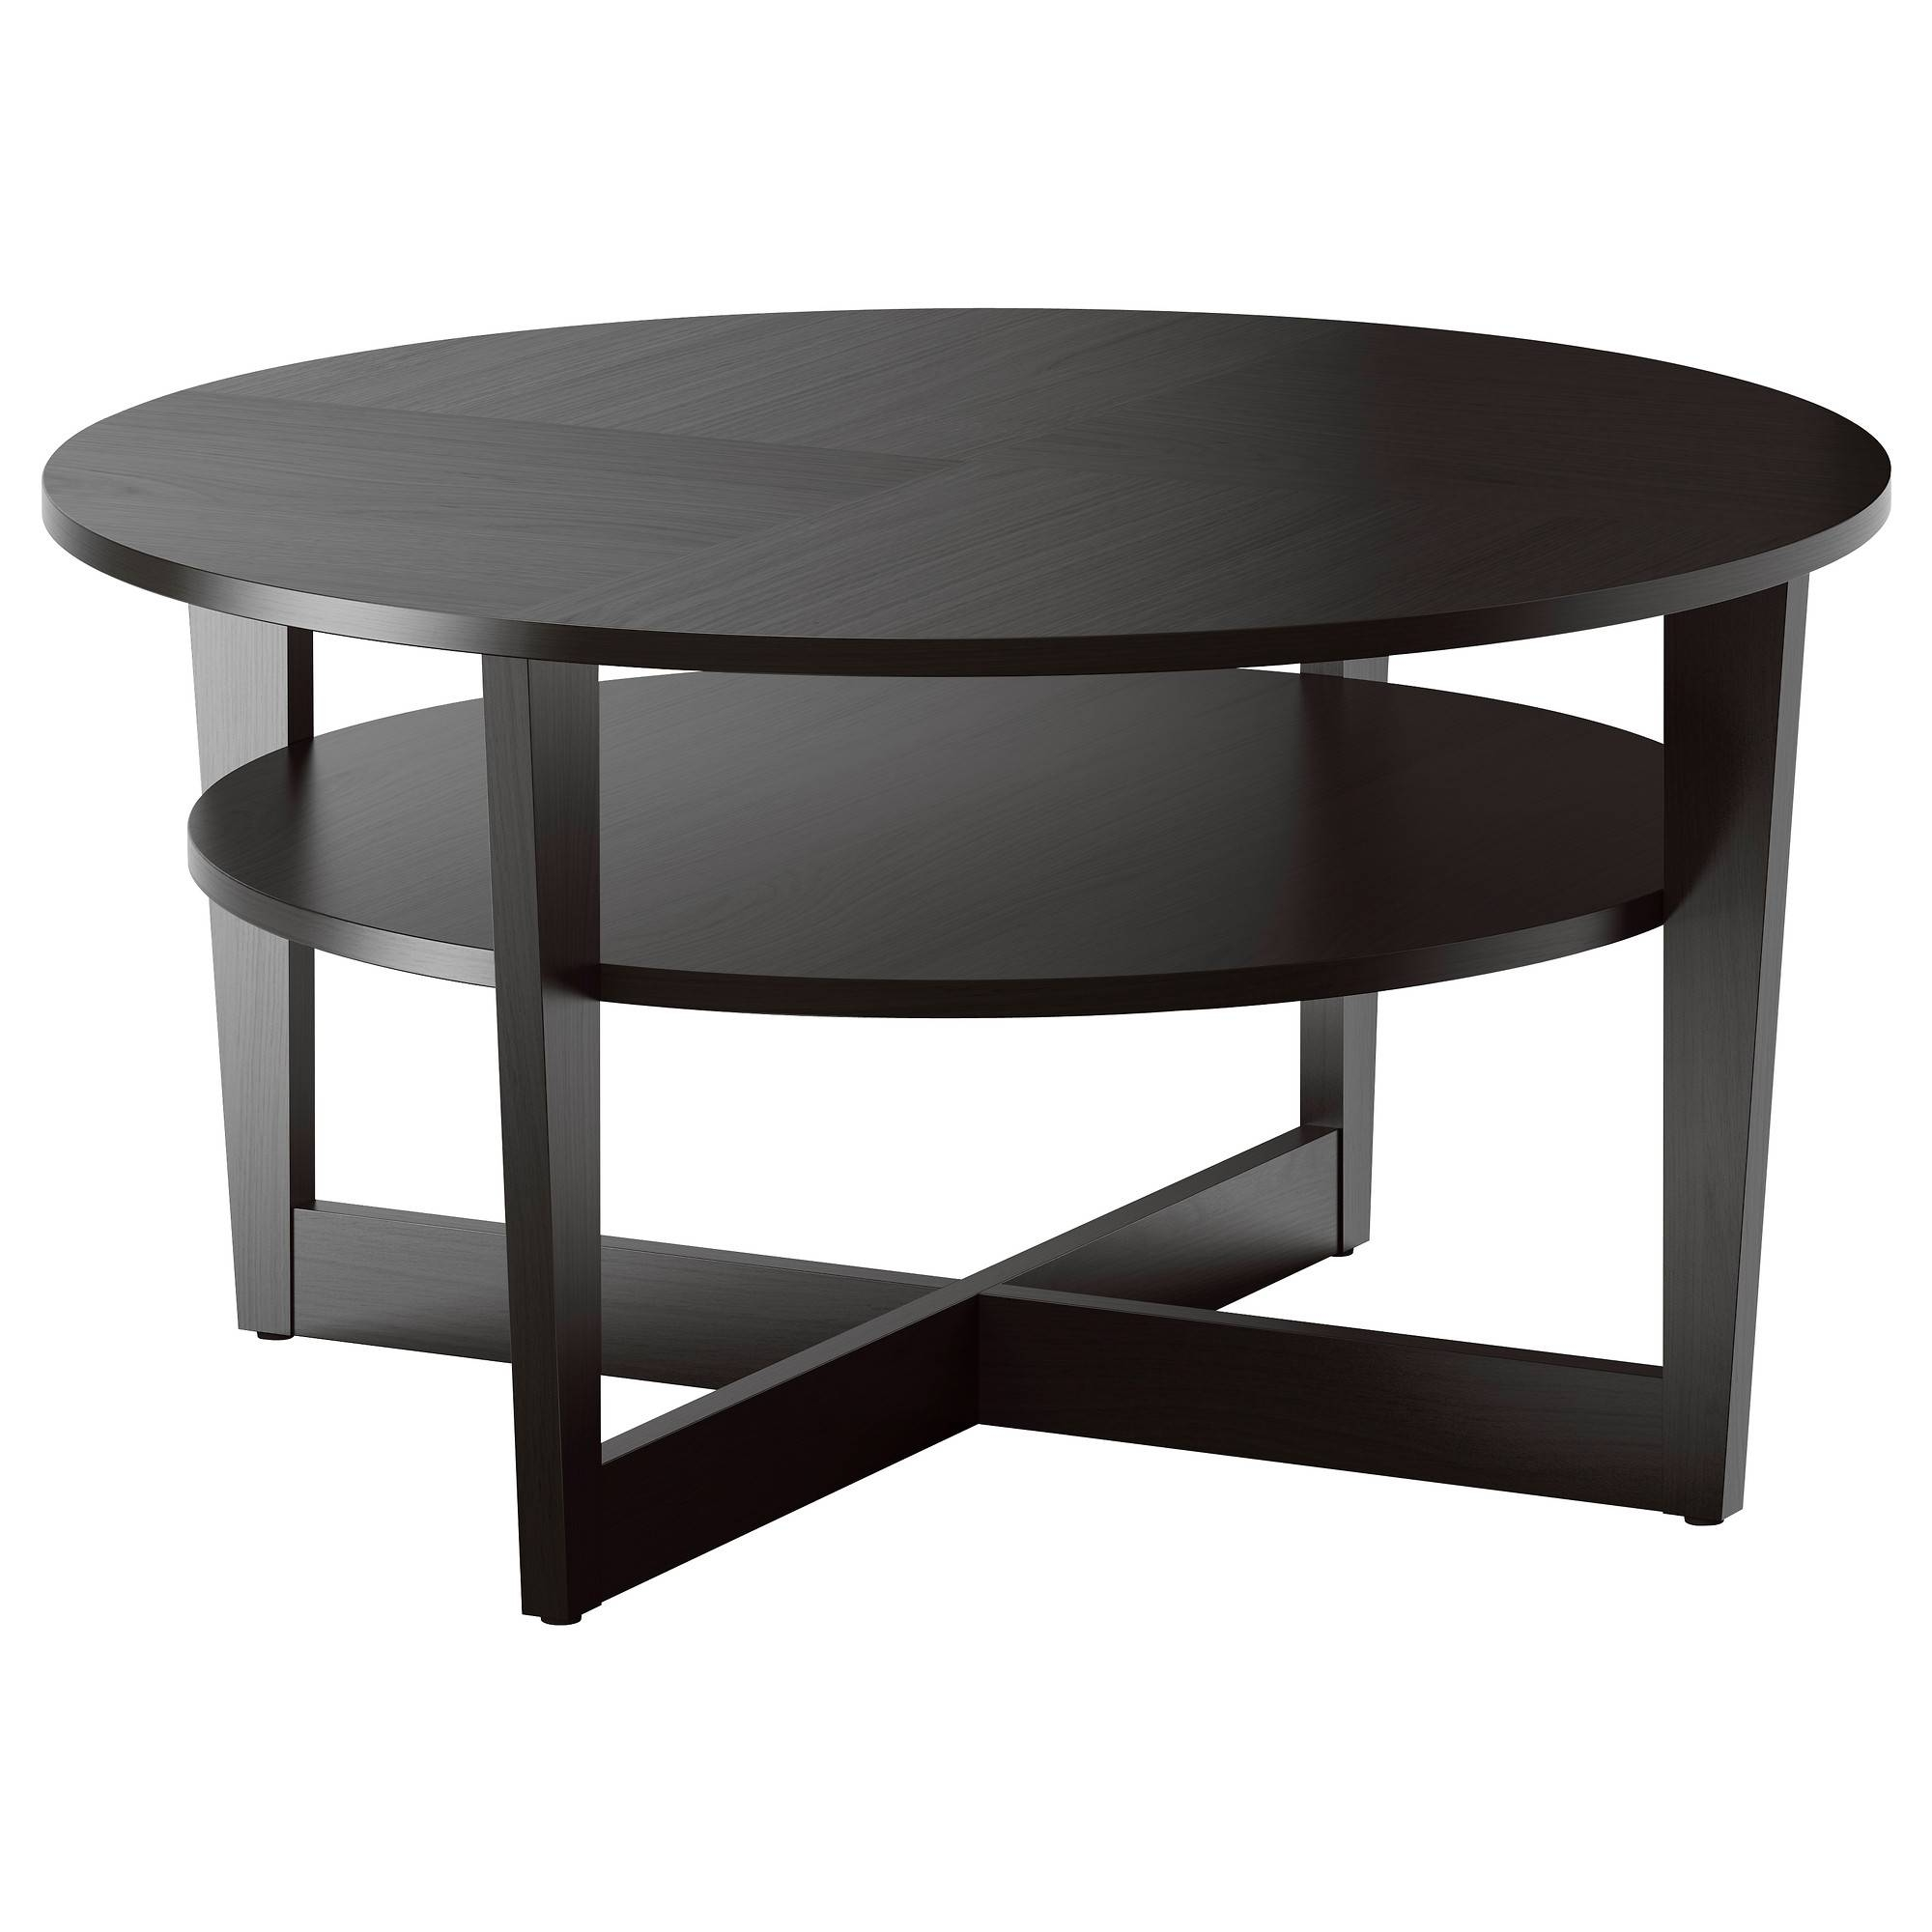 Vejmon Coffee Table - Black-Brown - Ikea regarding Circle Coffee Tables (Image 28 of 30)